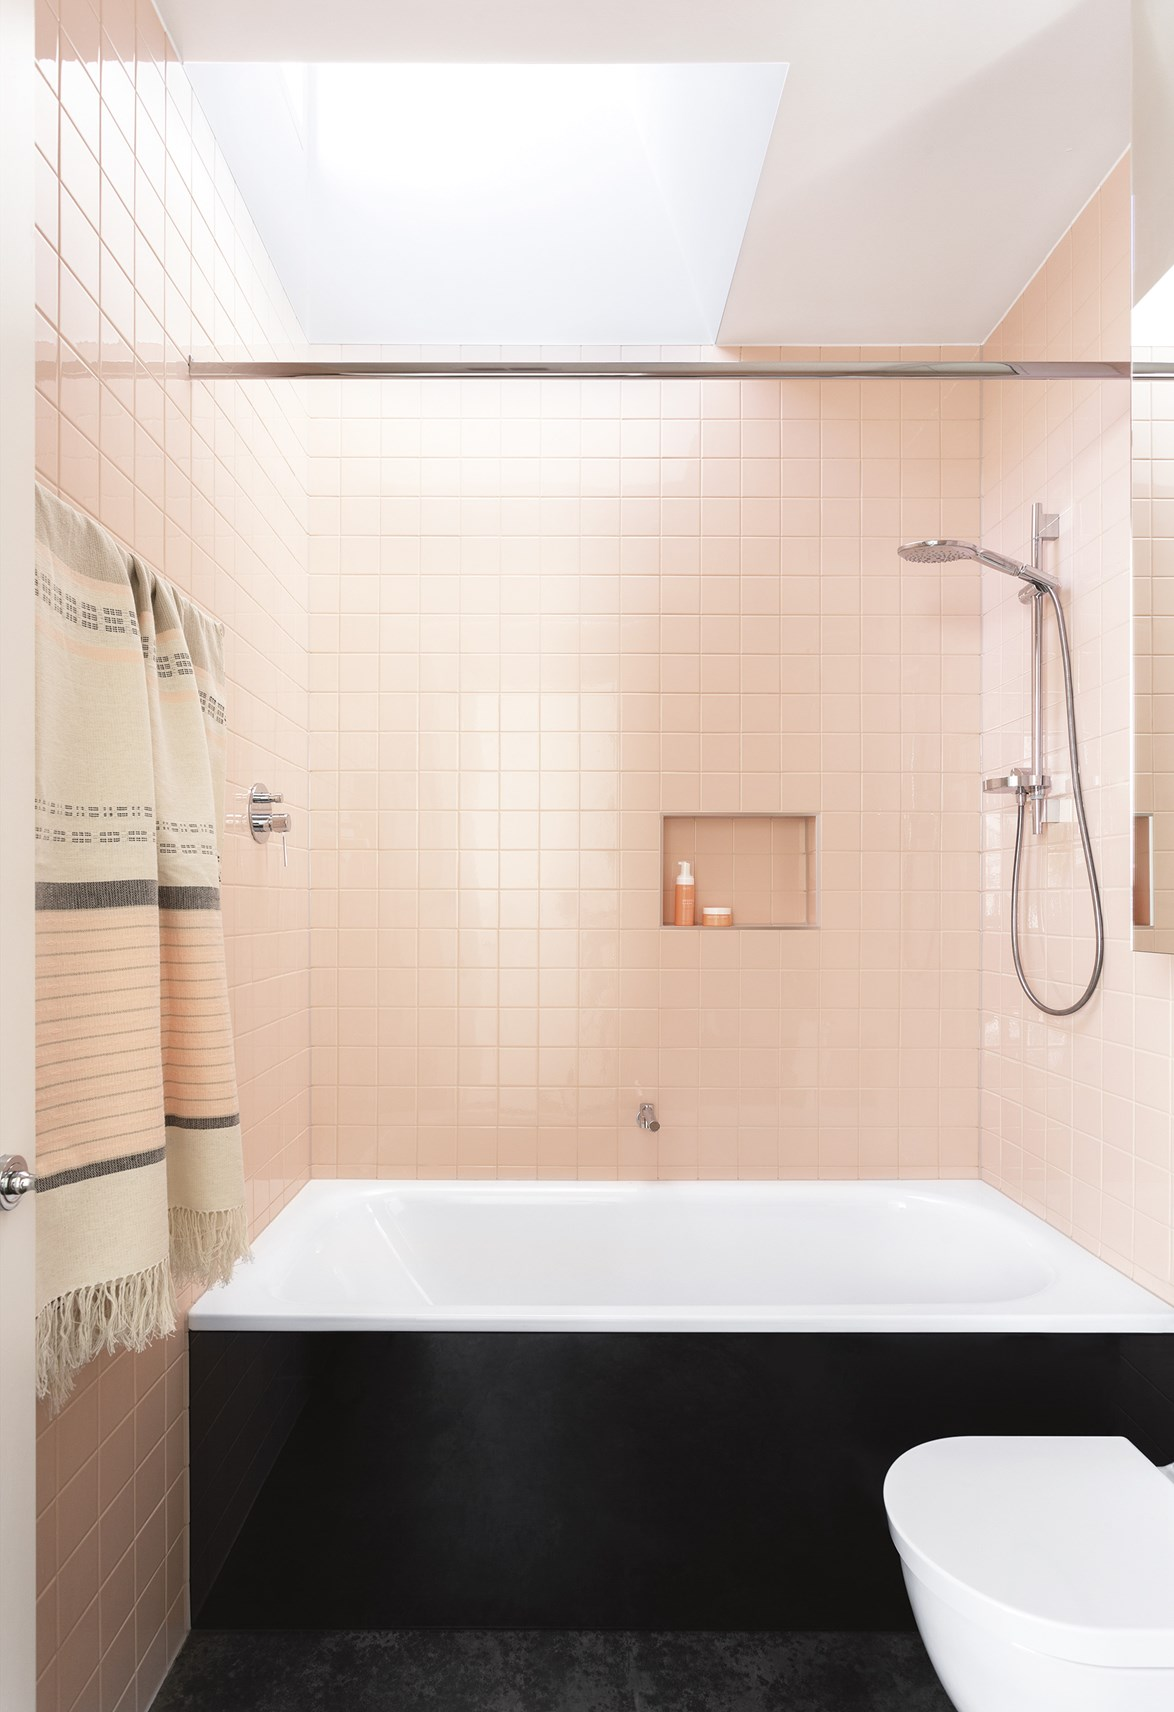 Ok, so it may not be *Millennial* but this powdery pink bathroom still has us head over heels. A skylight and large mirrored cabinet keep the entire room feeling bright and open, bouncing light off the dusty-pink tiled wall. *Design:* Wowowa Architecture & Interiors   *Styling:* Ruth Welsby   *Photography:* Martina Gemmola.